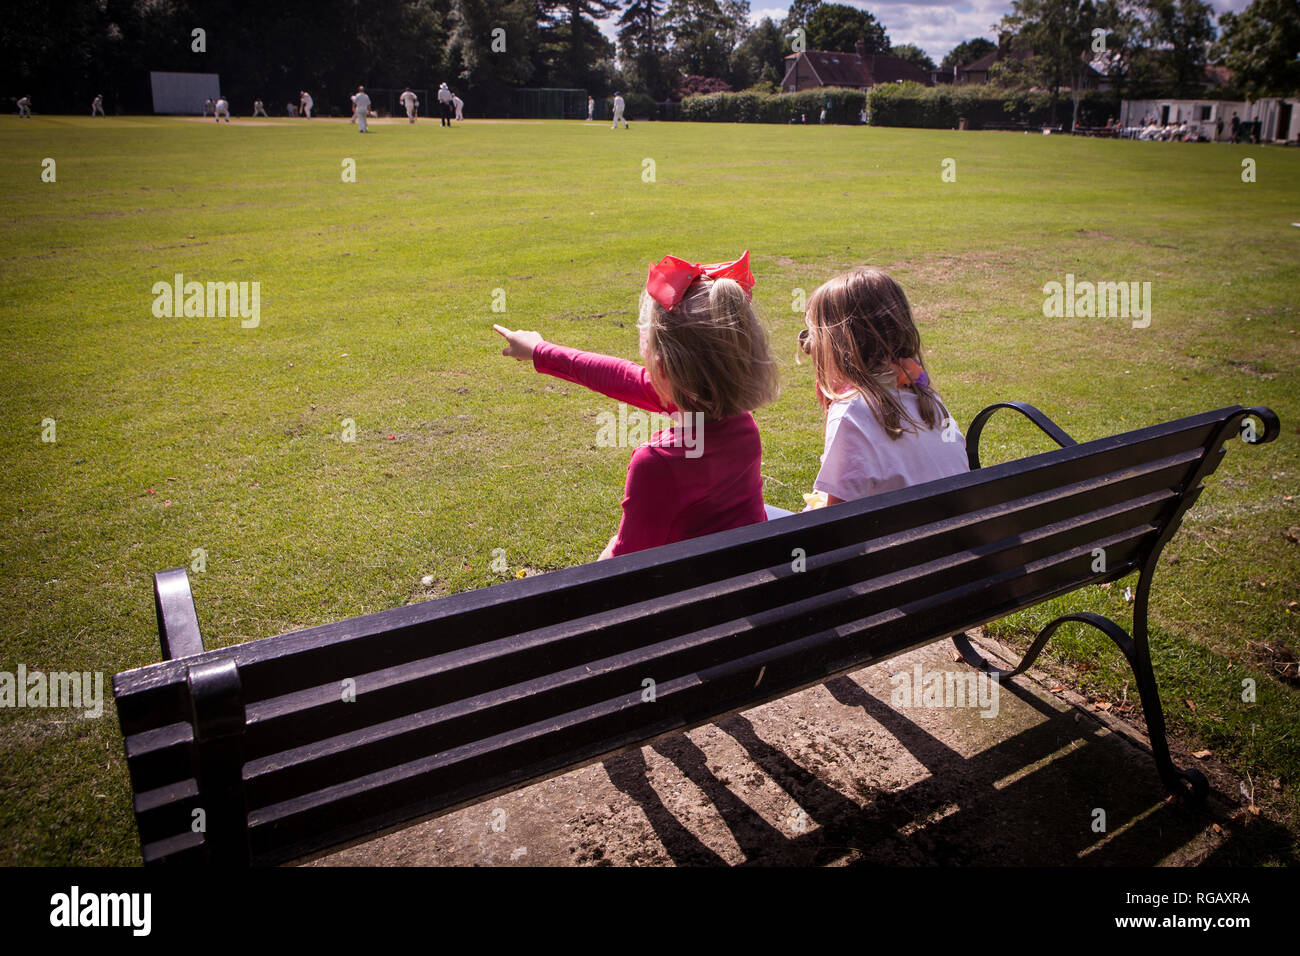 two young girls sitting on a park bench watching cricket Stock Photo